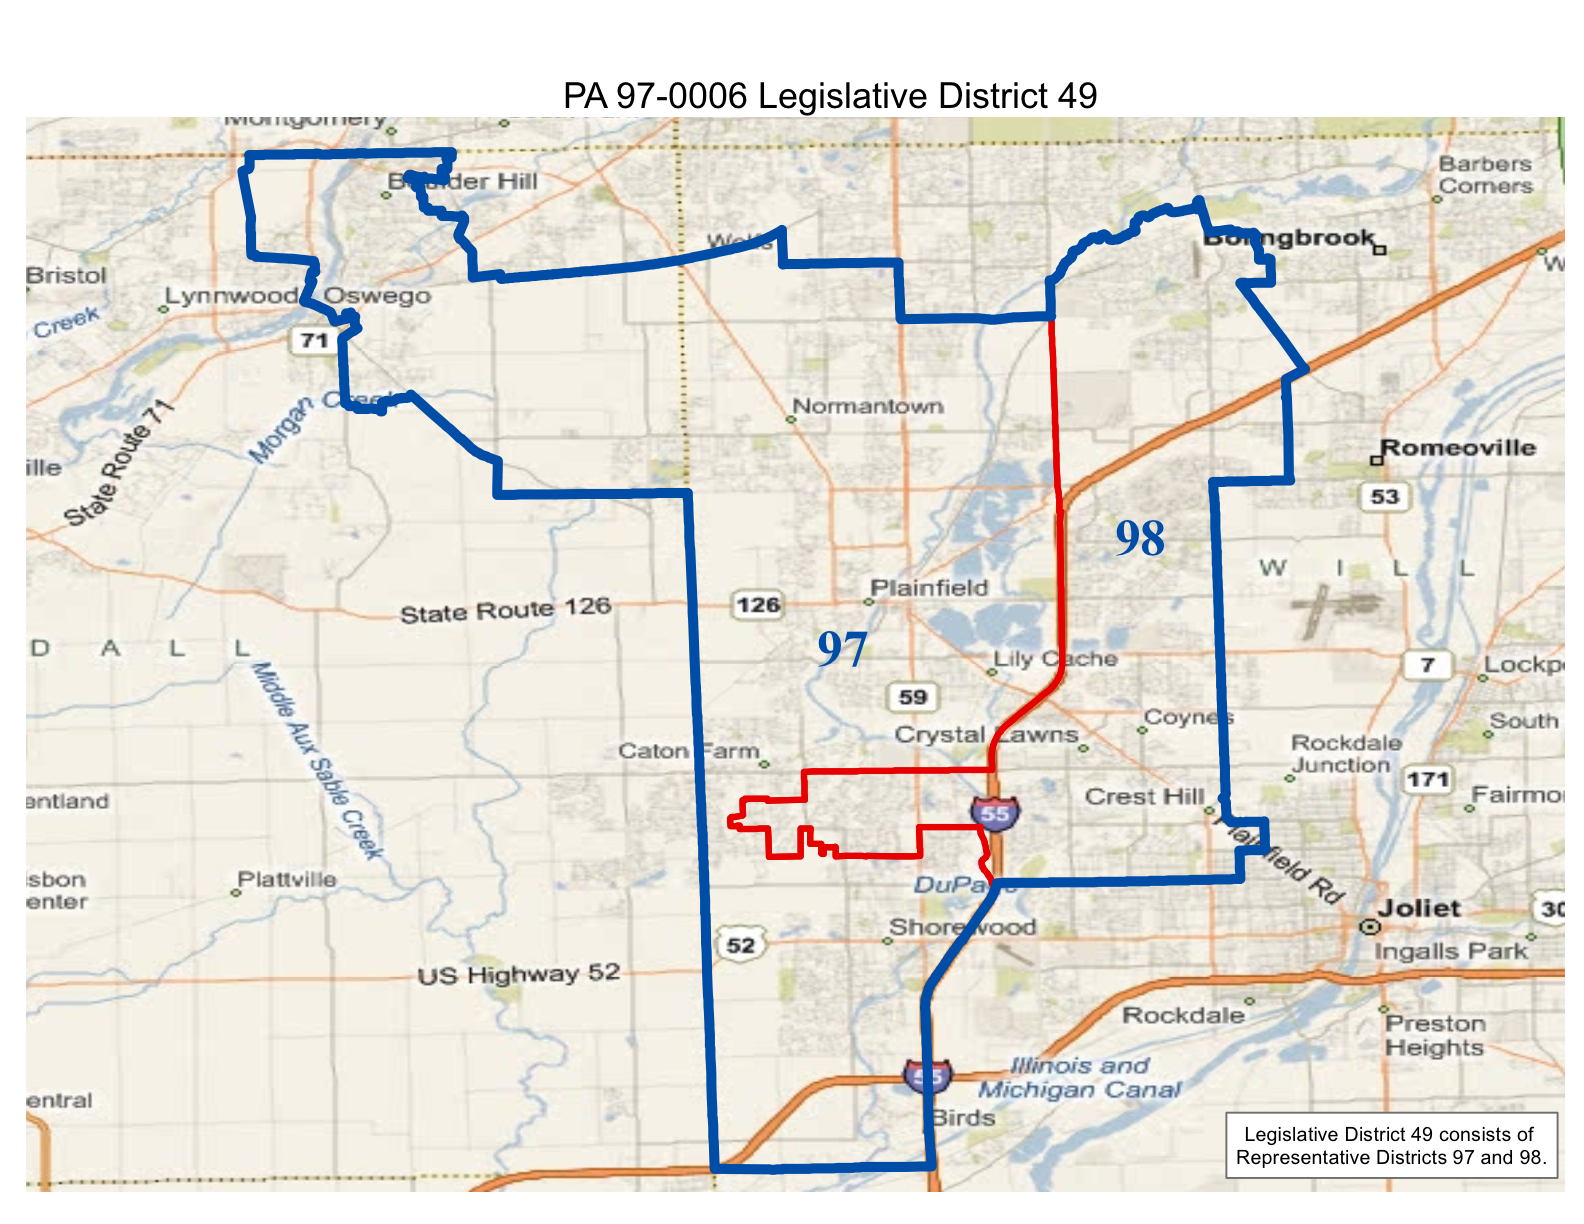 Will County Politics: 2011 on illinois judicial districts map, illinois house districts by zip code, illinois representative districts, illinois 4th district, us appeals court circuits map, illinois house of representatives, illinois appellate districts, illinois neighborhood map, illinois state land map, illinois state legislature, illinois united states map, illinois senatorial districts, chicago police districts zones map, illinois voting districts map, illinois district 18, illinois senators and representatives, illinois congressional districts, illinois state rep map, illinois state legislative map, illinois state legislative districts,